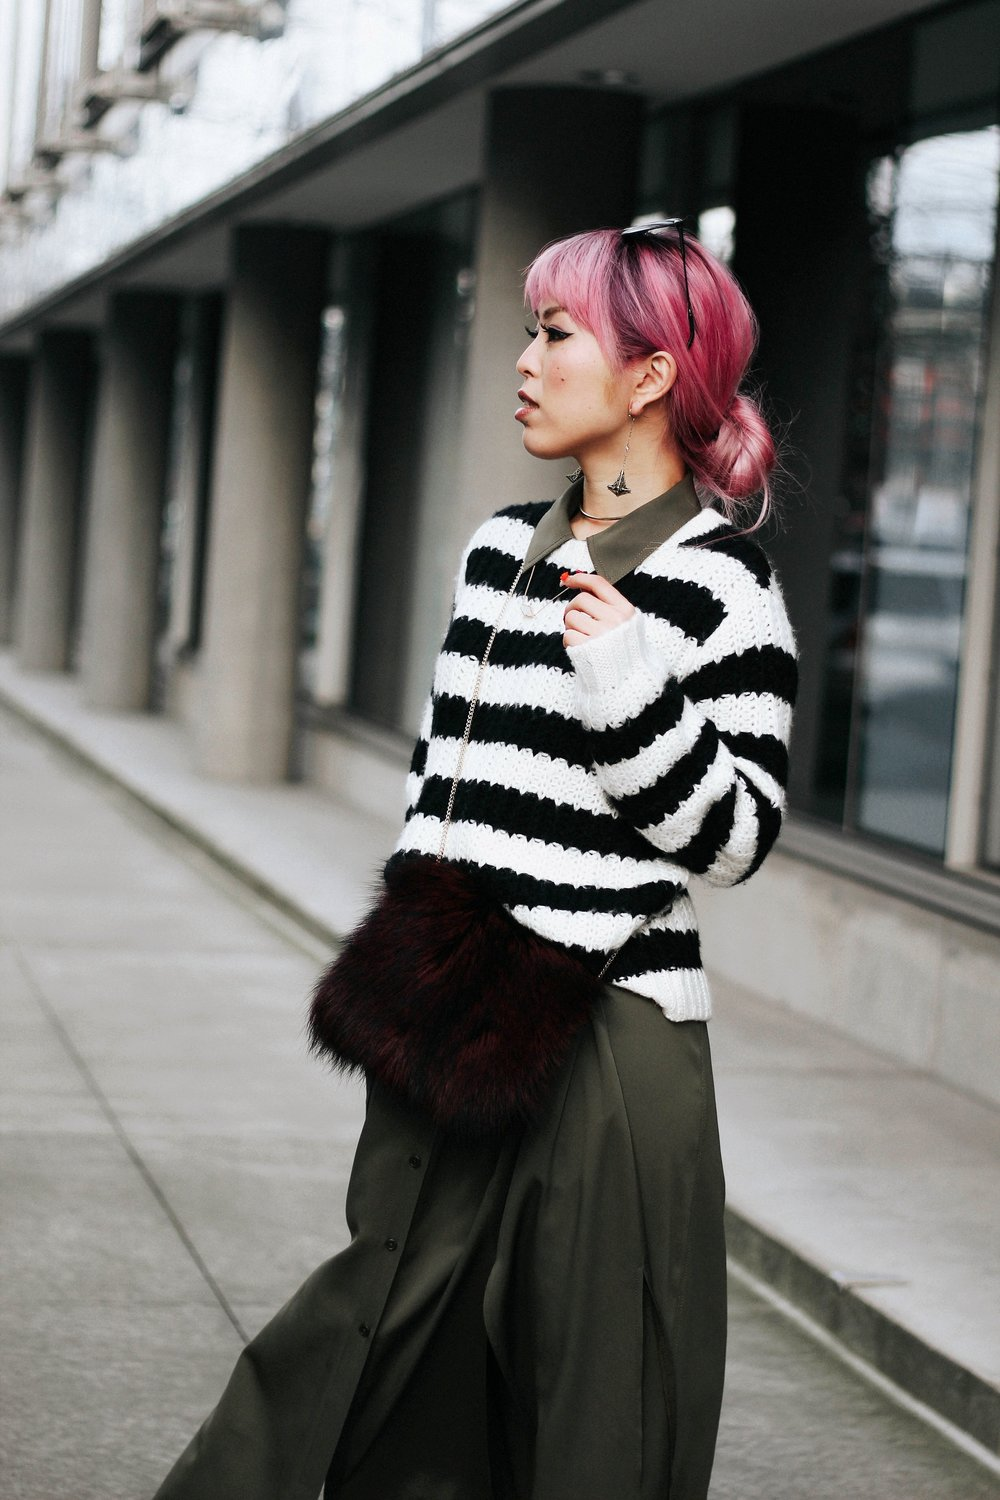 Who What Wear Striped Sweater_DVF Clarise Midi Shirt Dress_DVF Fur Bag_Kendra Scott Diana Shoulder Duster Earrings In Antique Brass_Amazon Fishnet Tights_ZARA ASYMMETRIC LEATHER HIGH HEEL SHOES_Aikas Love Closet_Seattle Fashion Blogger_japanese_Pink Hair 7